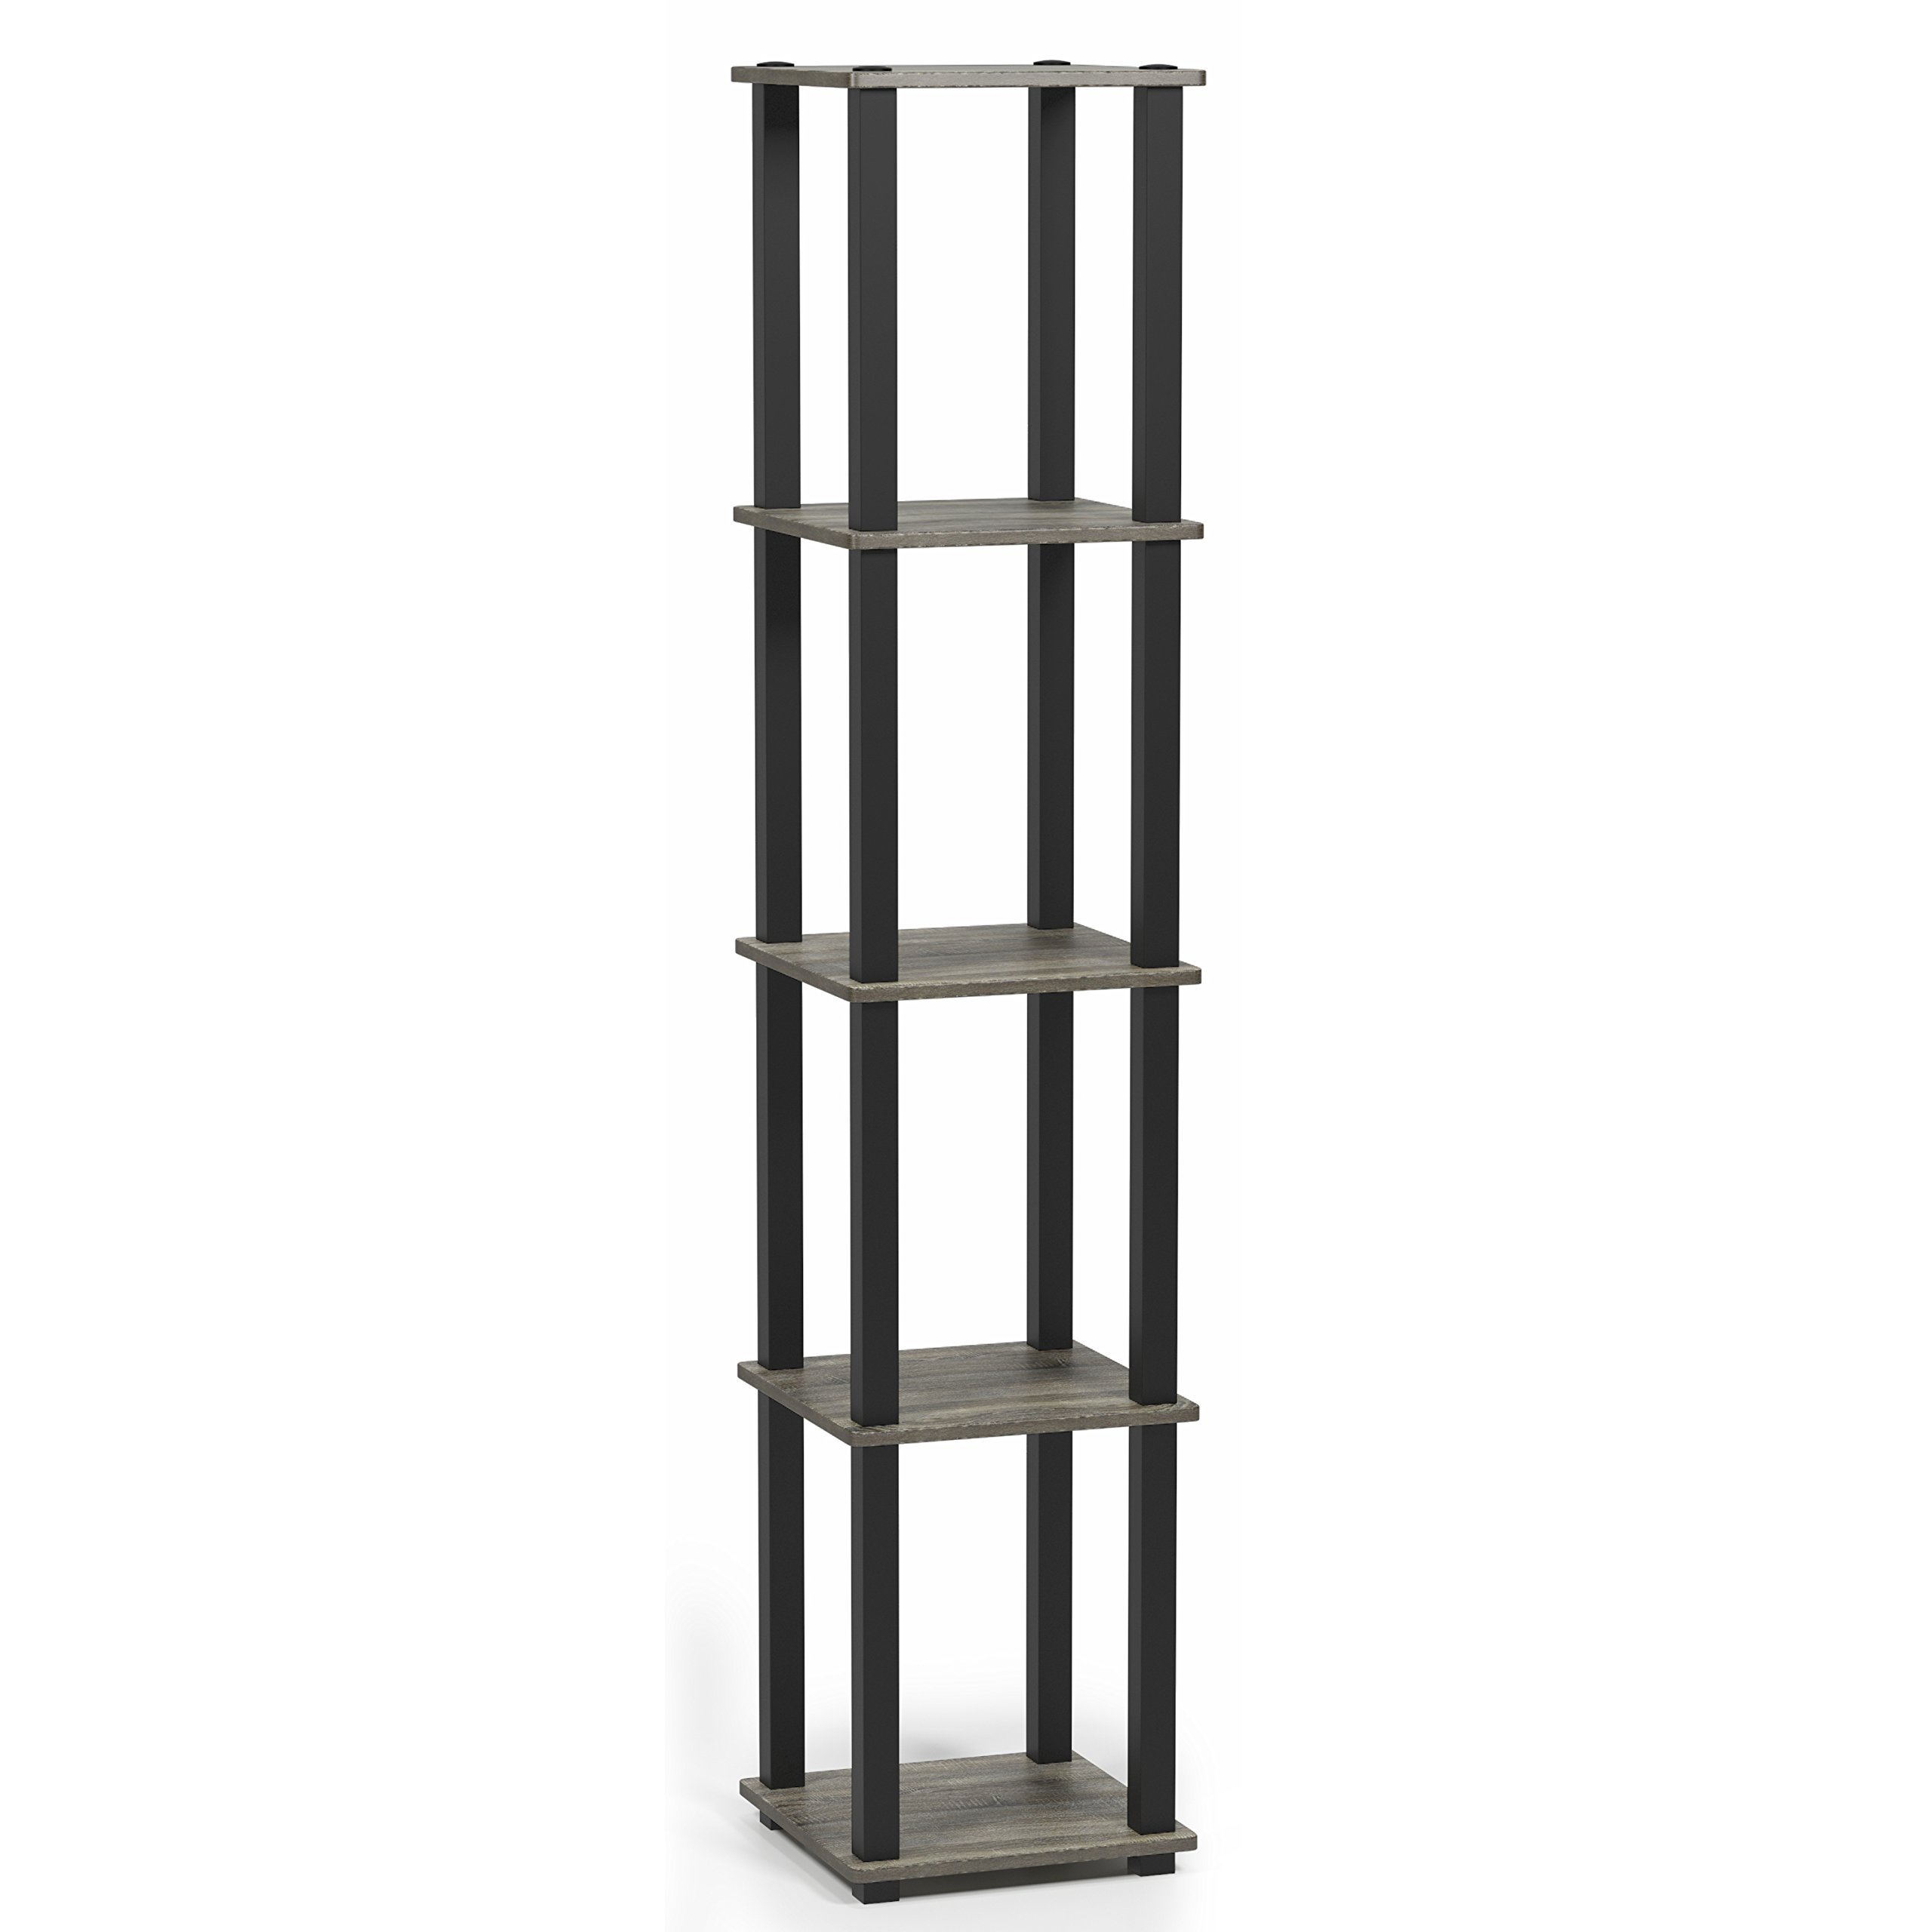 Furinno 18026GYW/BK Turn-S 5-Tier Compact Multipurpose Shelf, Square Tube, French Oak Grey/Black by Furinno (Image #6)